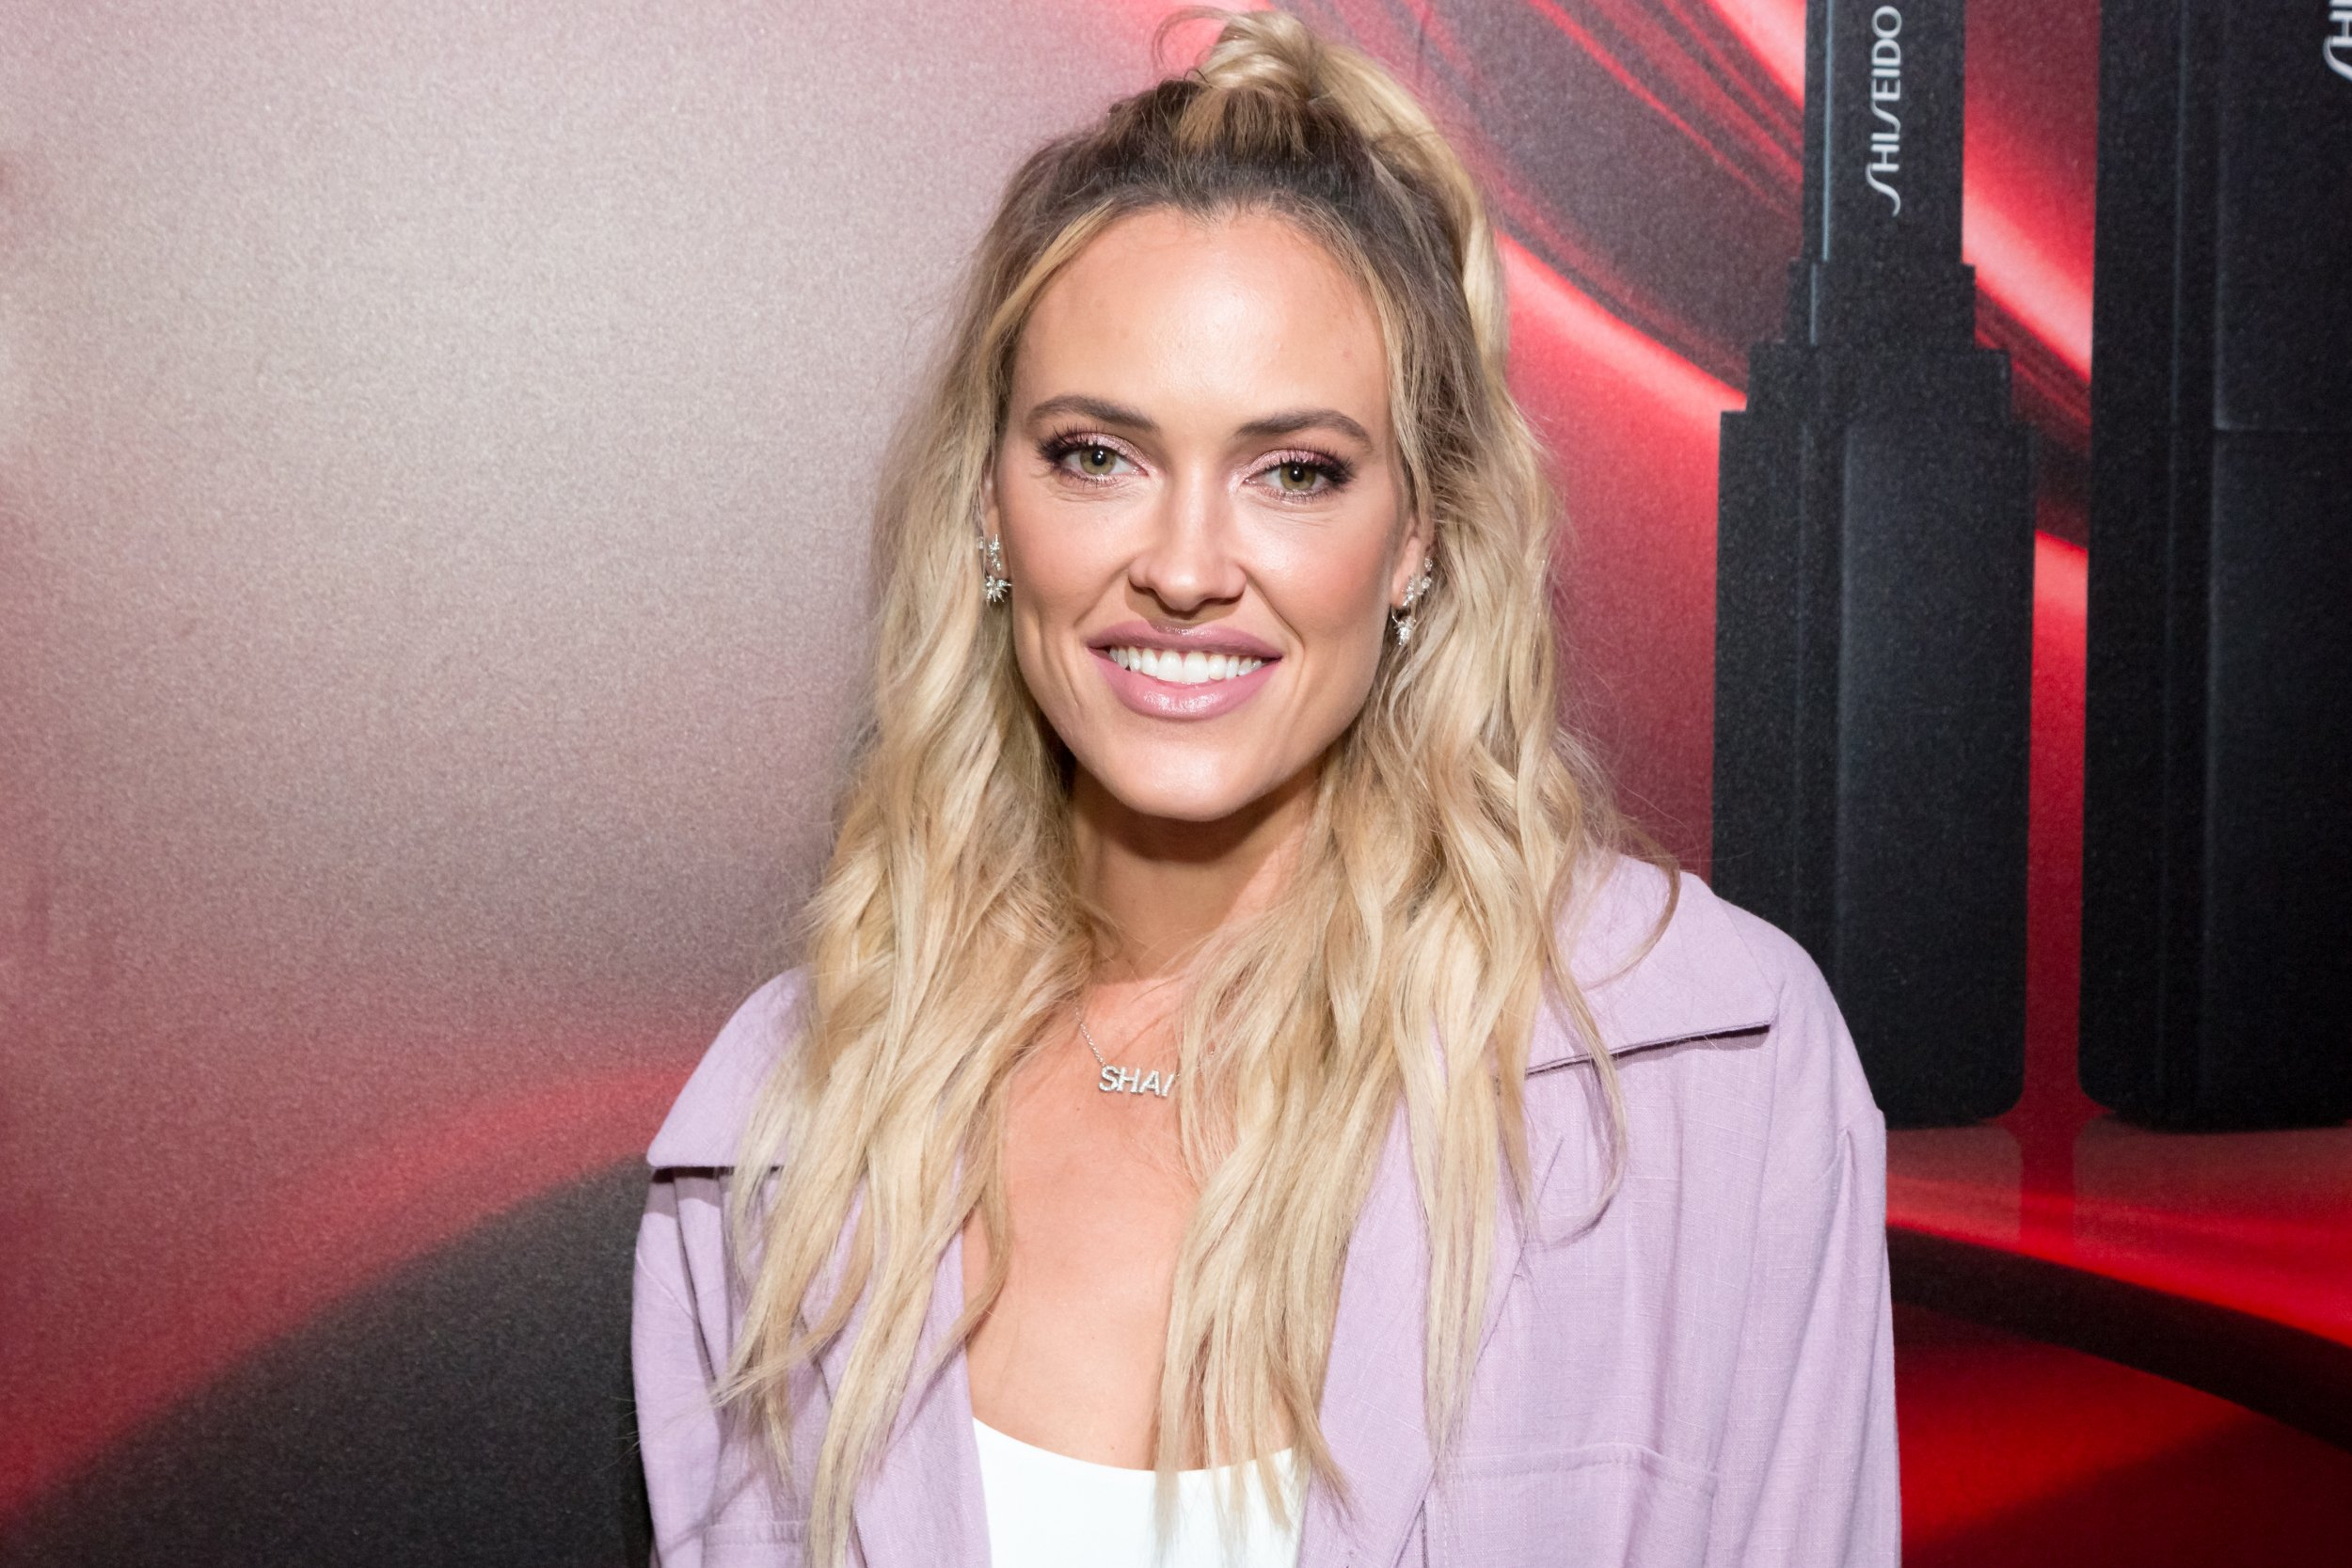 Will Peta Murgatroyd Return To Dancing With The Stars Dancer